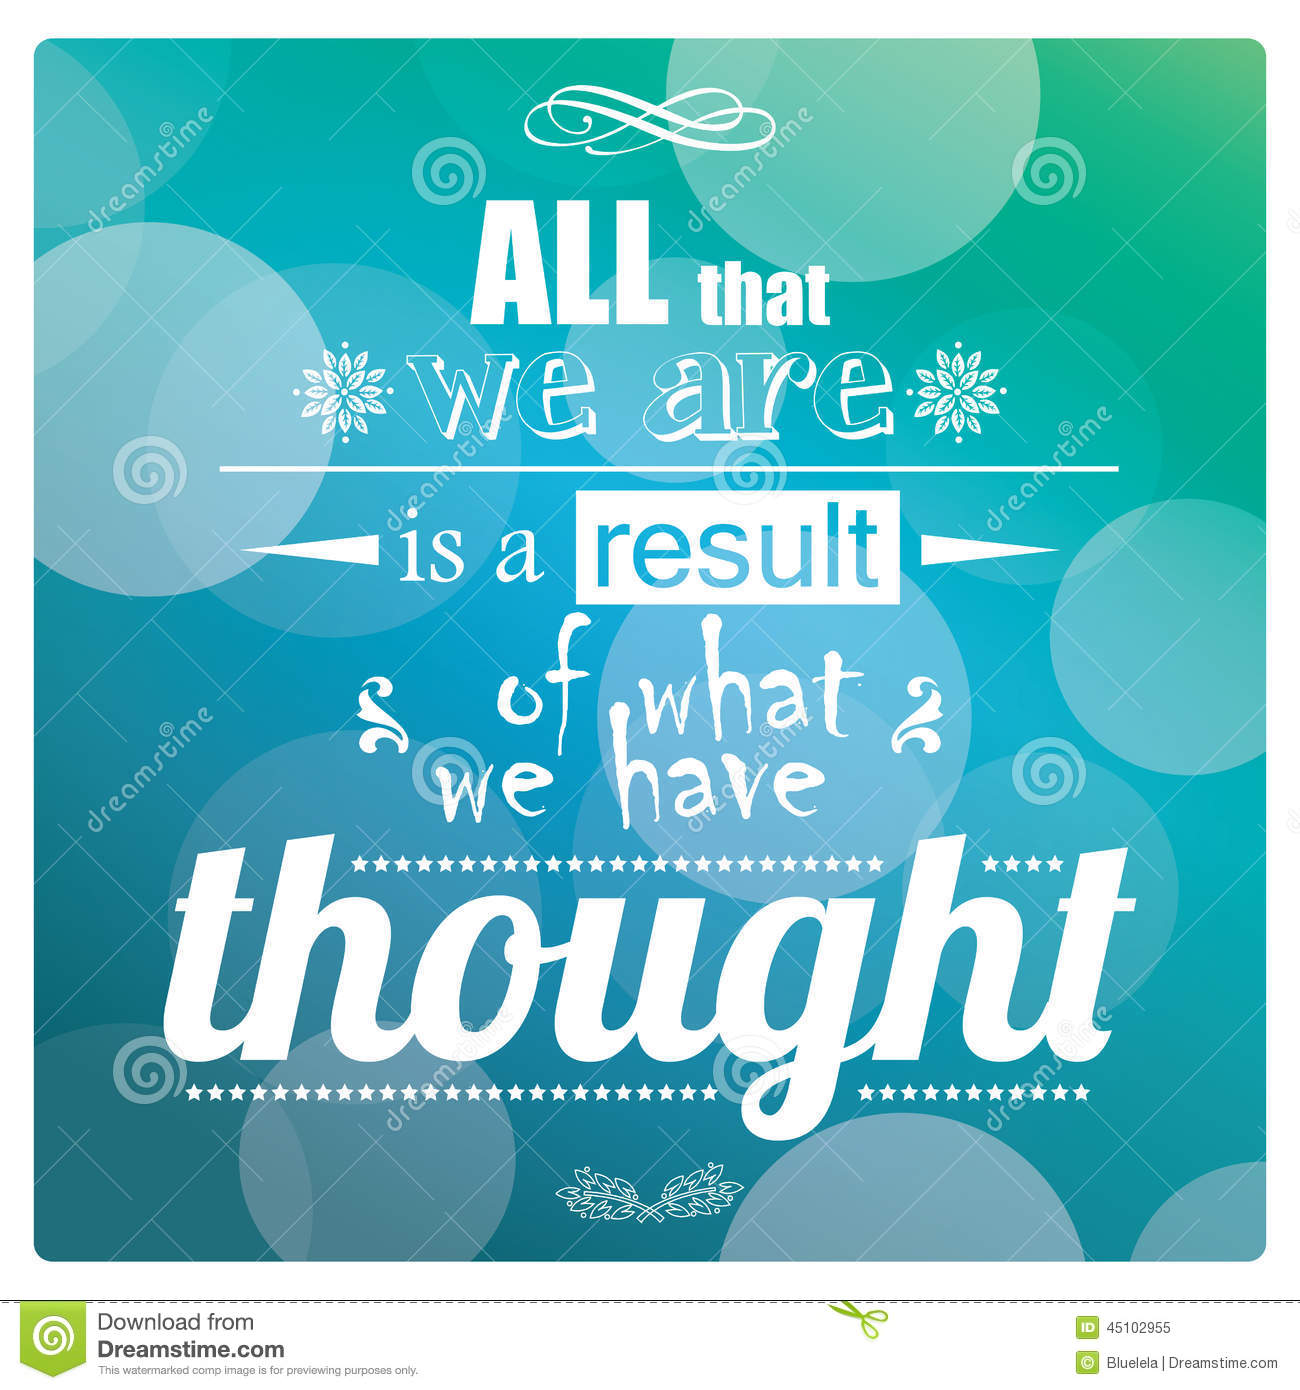 Quote, inspirational poster, typographical design, vector illustration